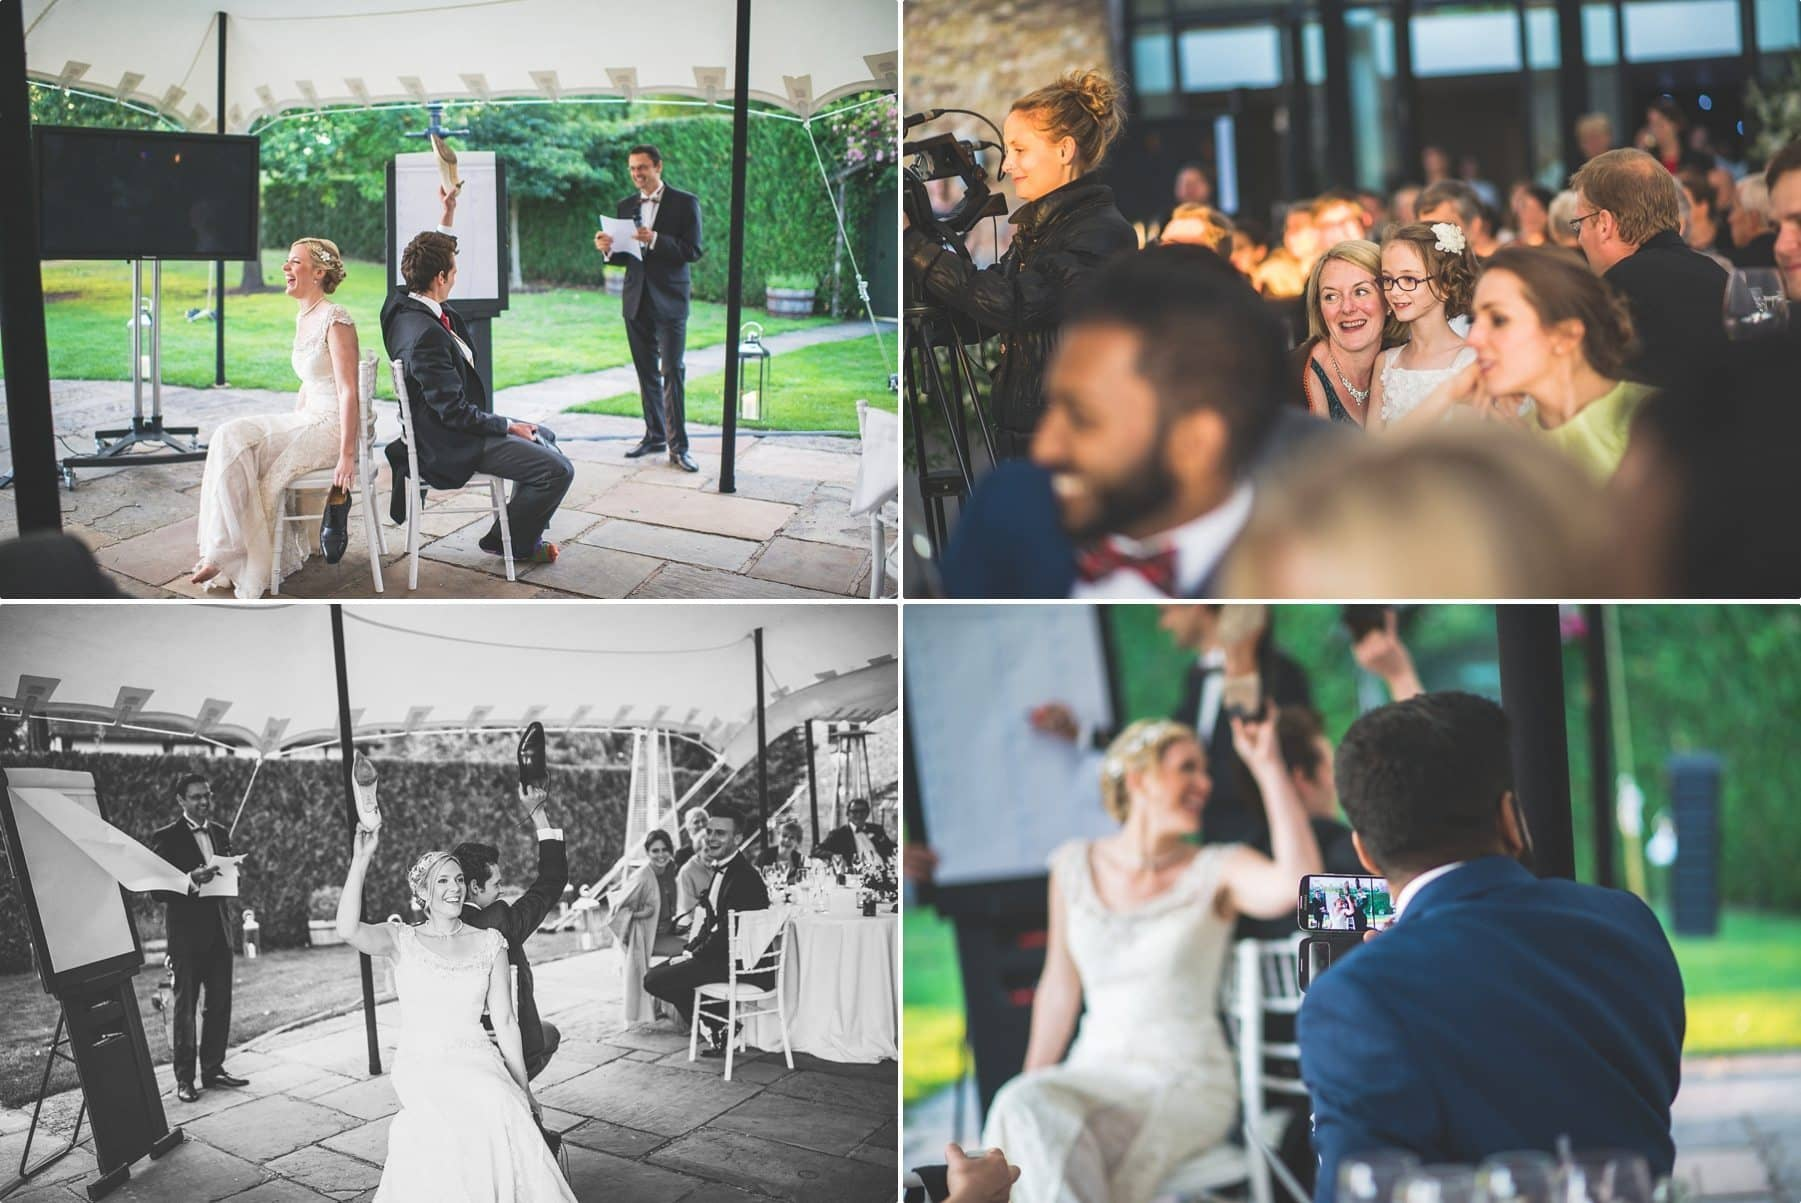 Fun wedding games with the bride and groom at coworth park barn summer wedding